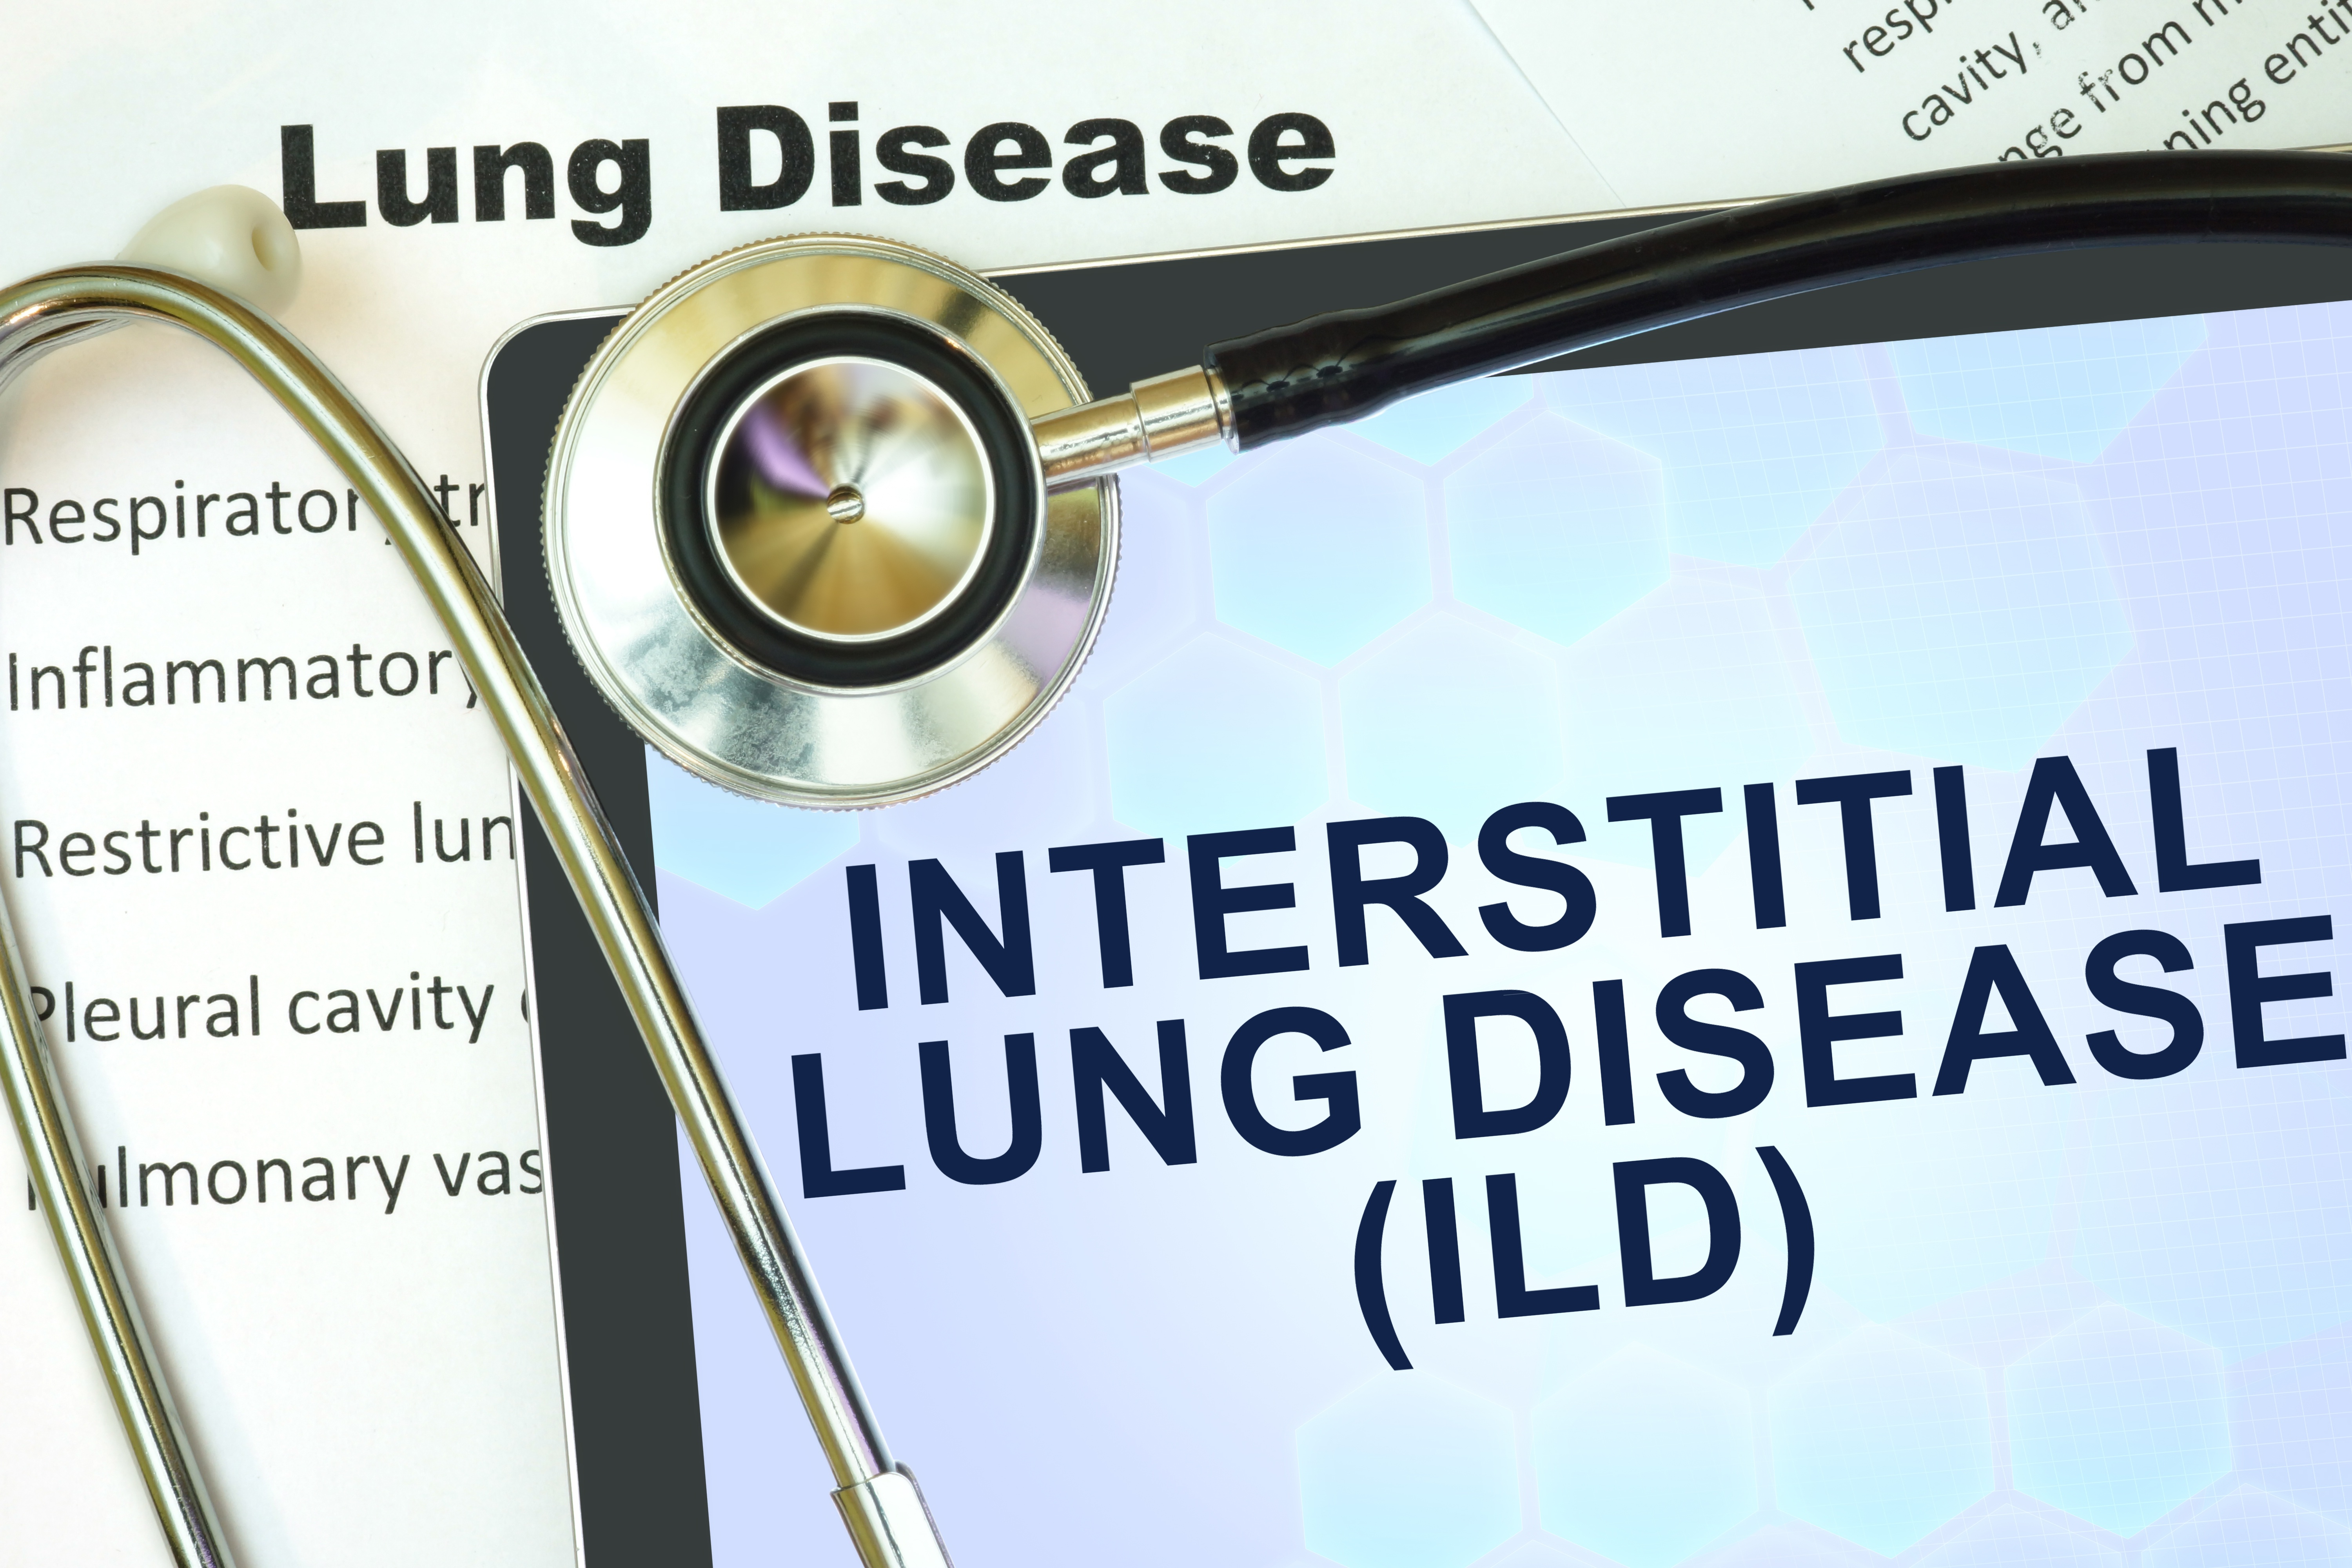 Interstitial Lung disease.jpg